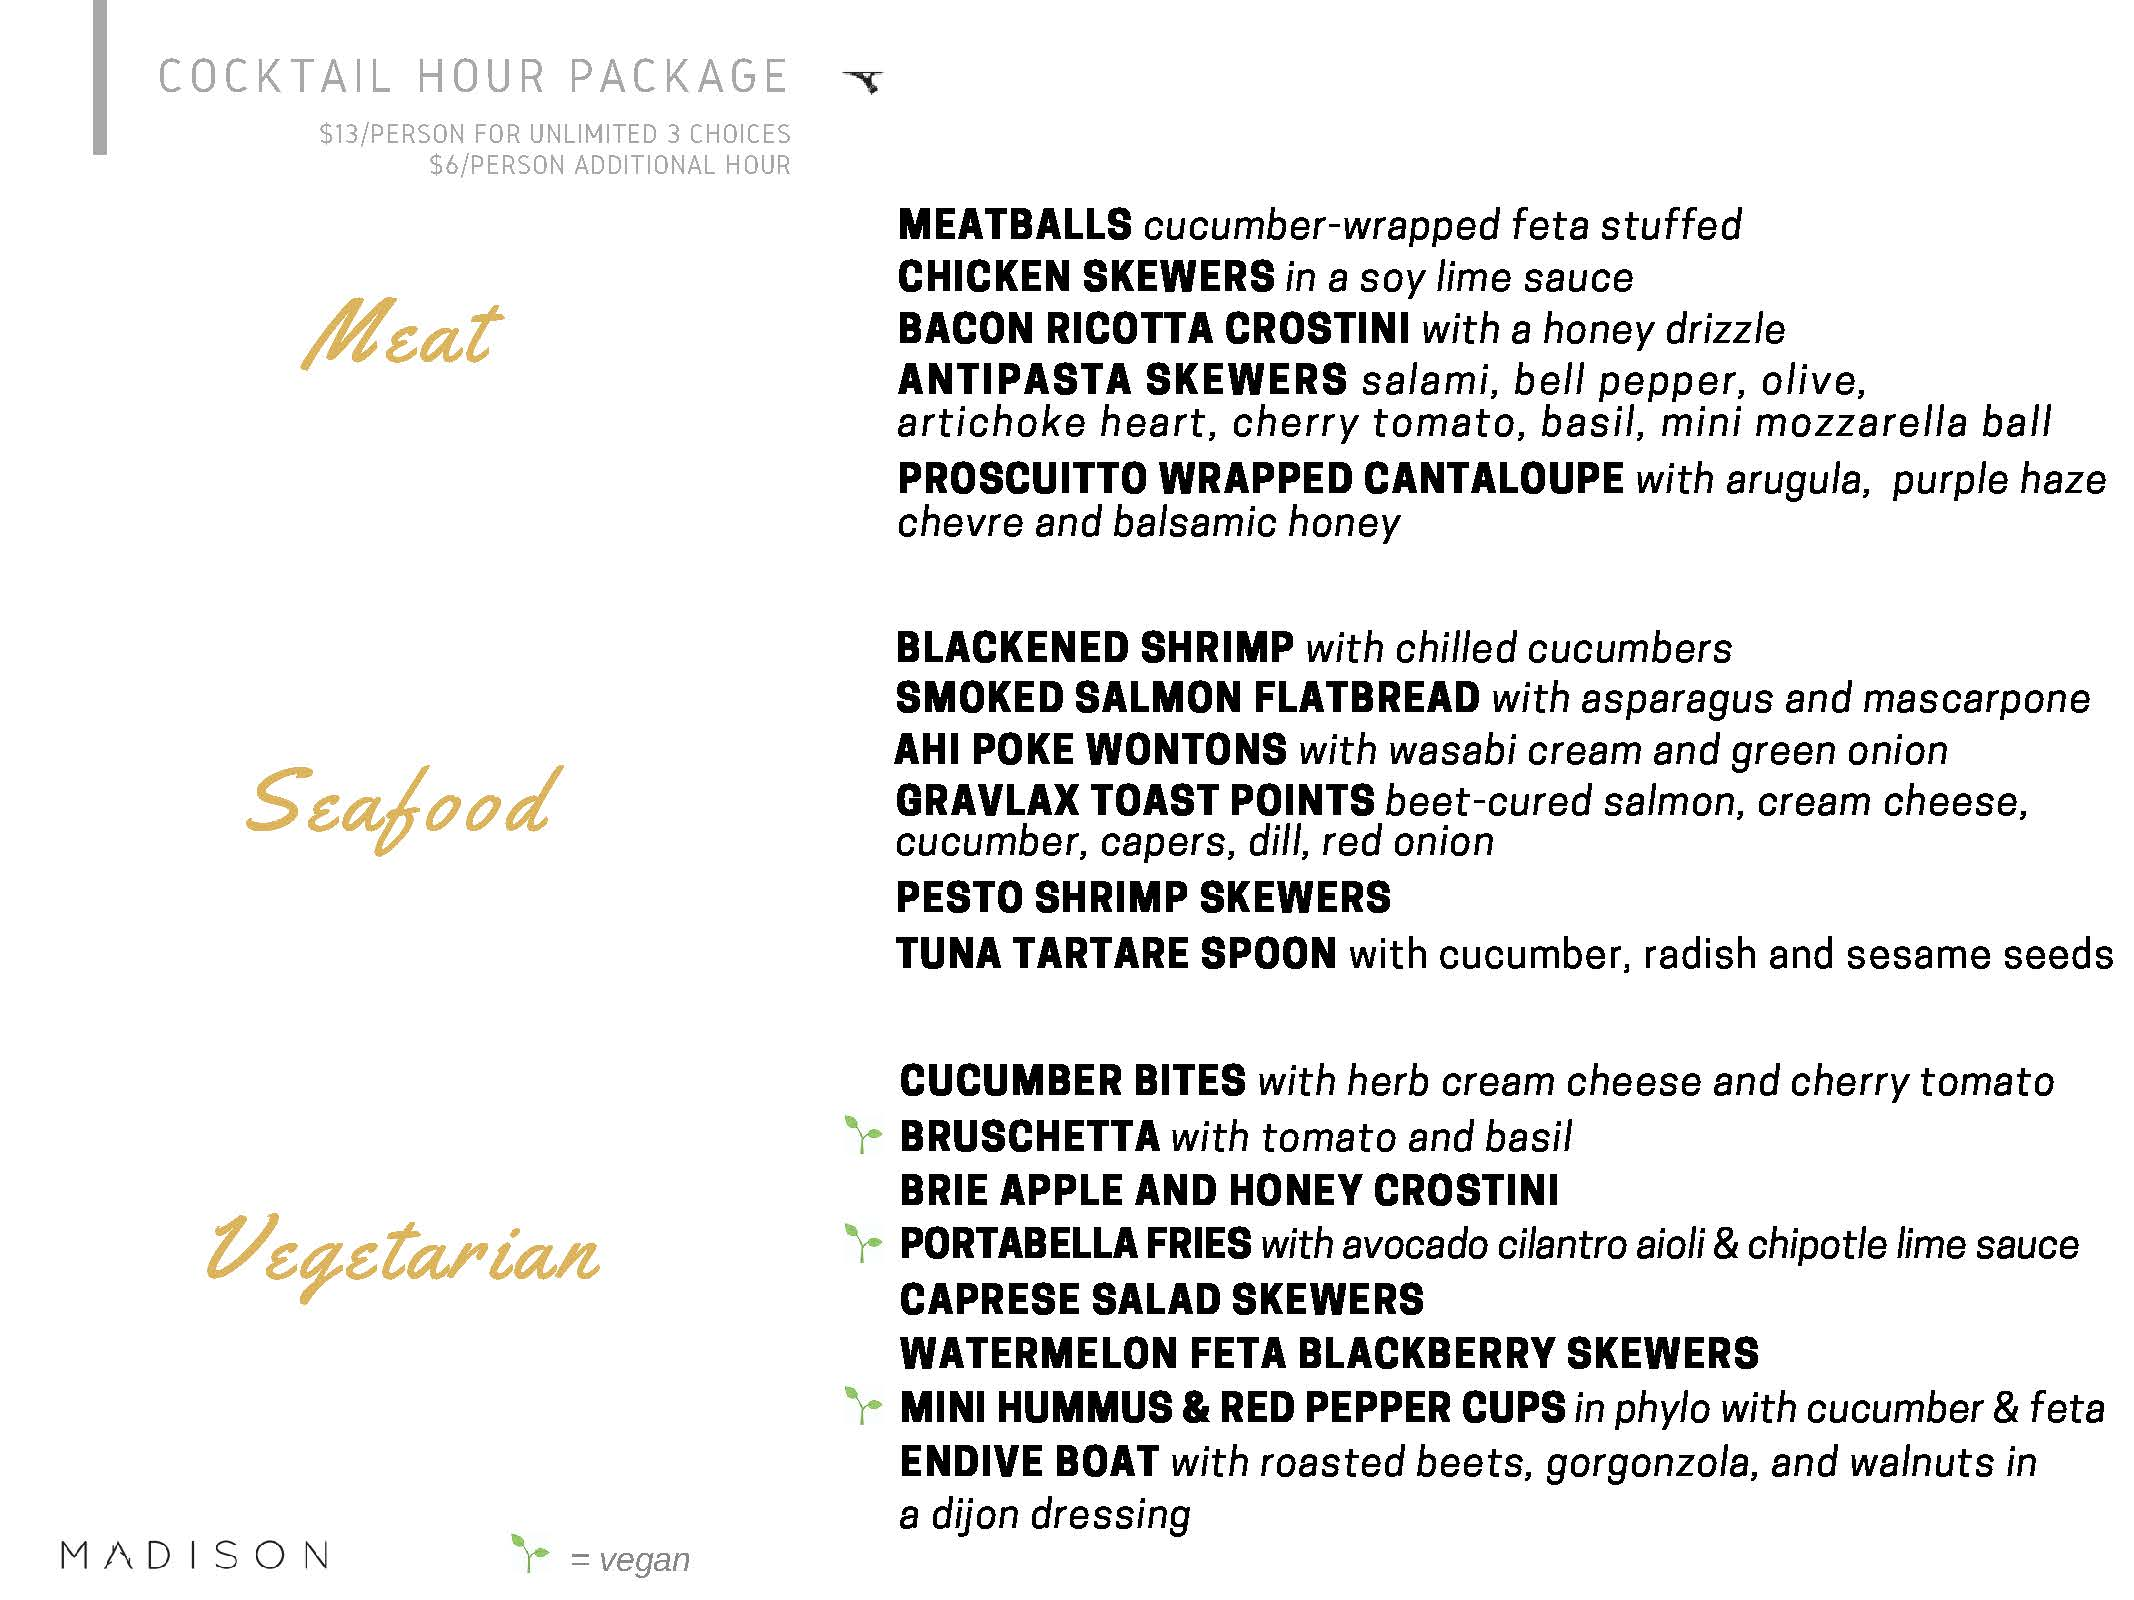 Madison on Park Events Menu 2019_Page_3.jpg